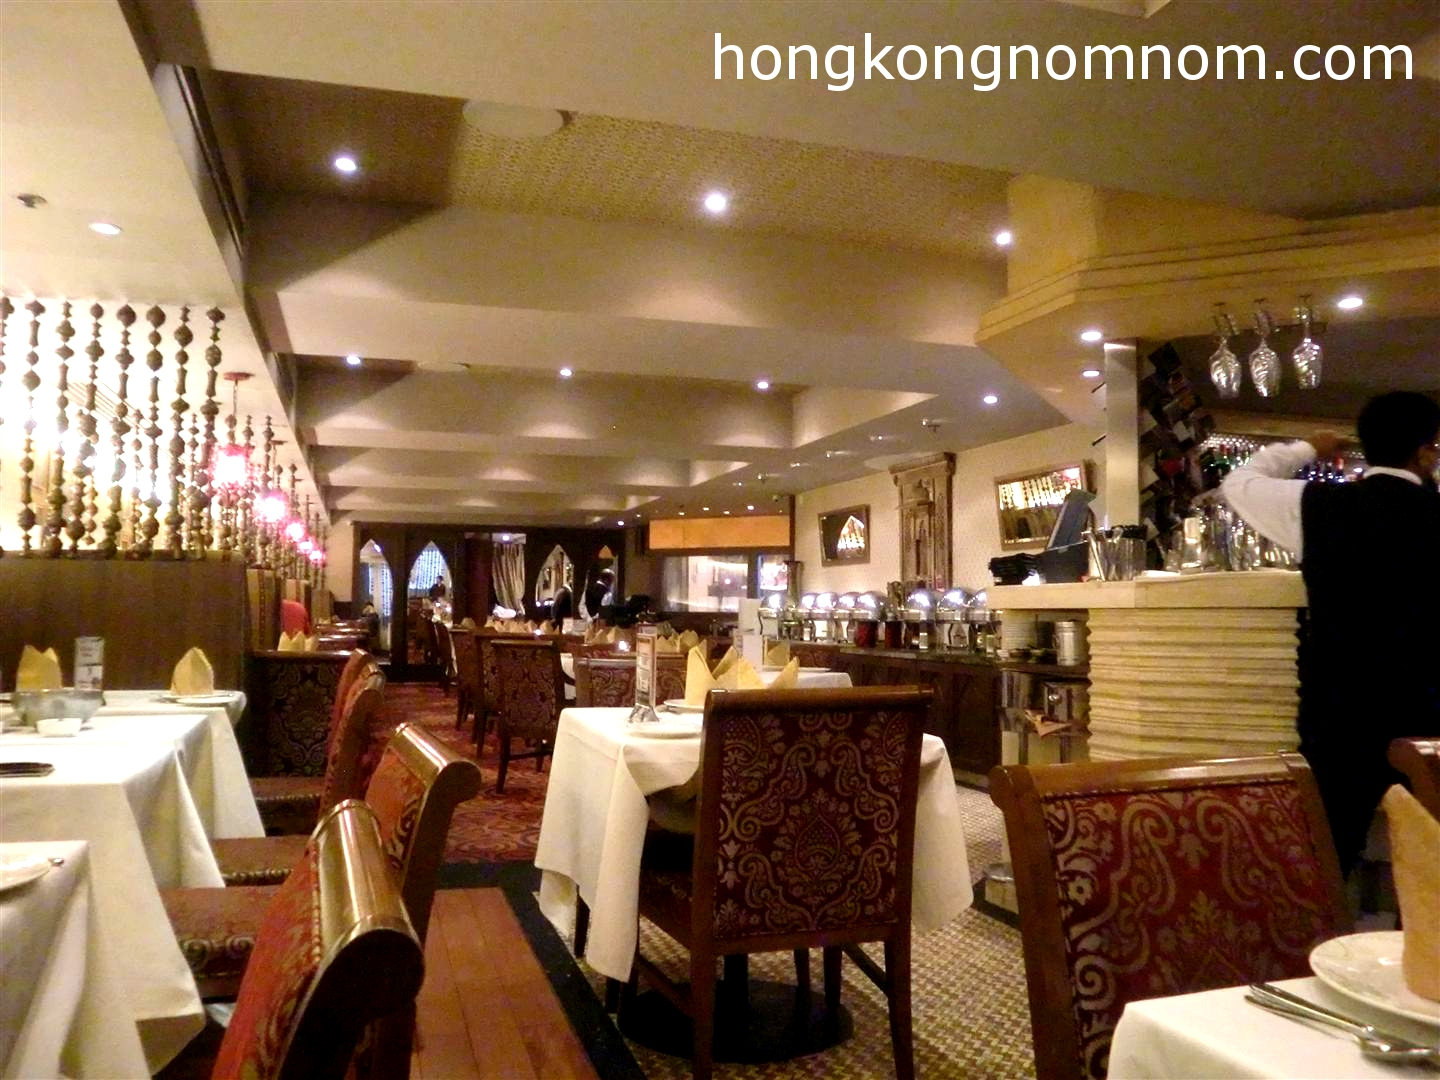 Gaylord The Indian Restaurant 爵樂印度餐廳 Tsim Sha Tsui Hong